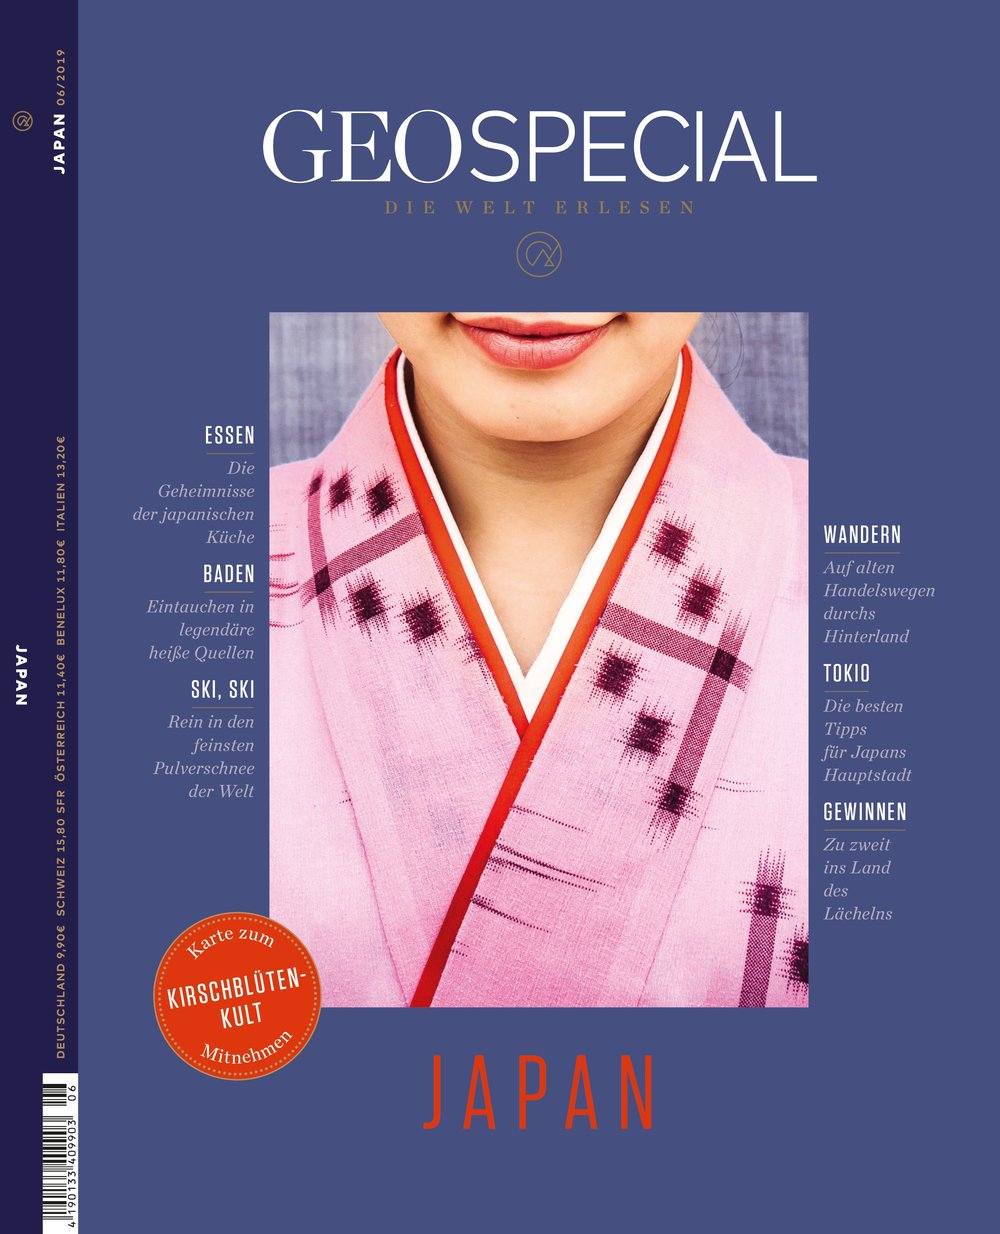 GEO SPECIAL 06/2019